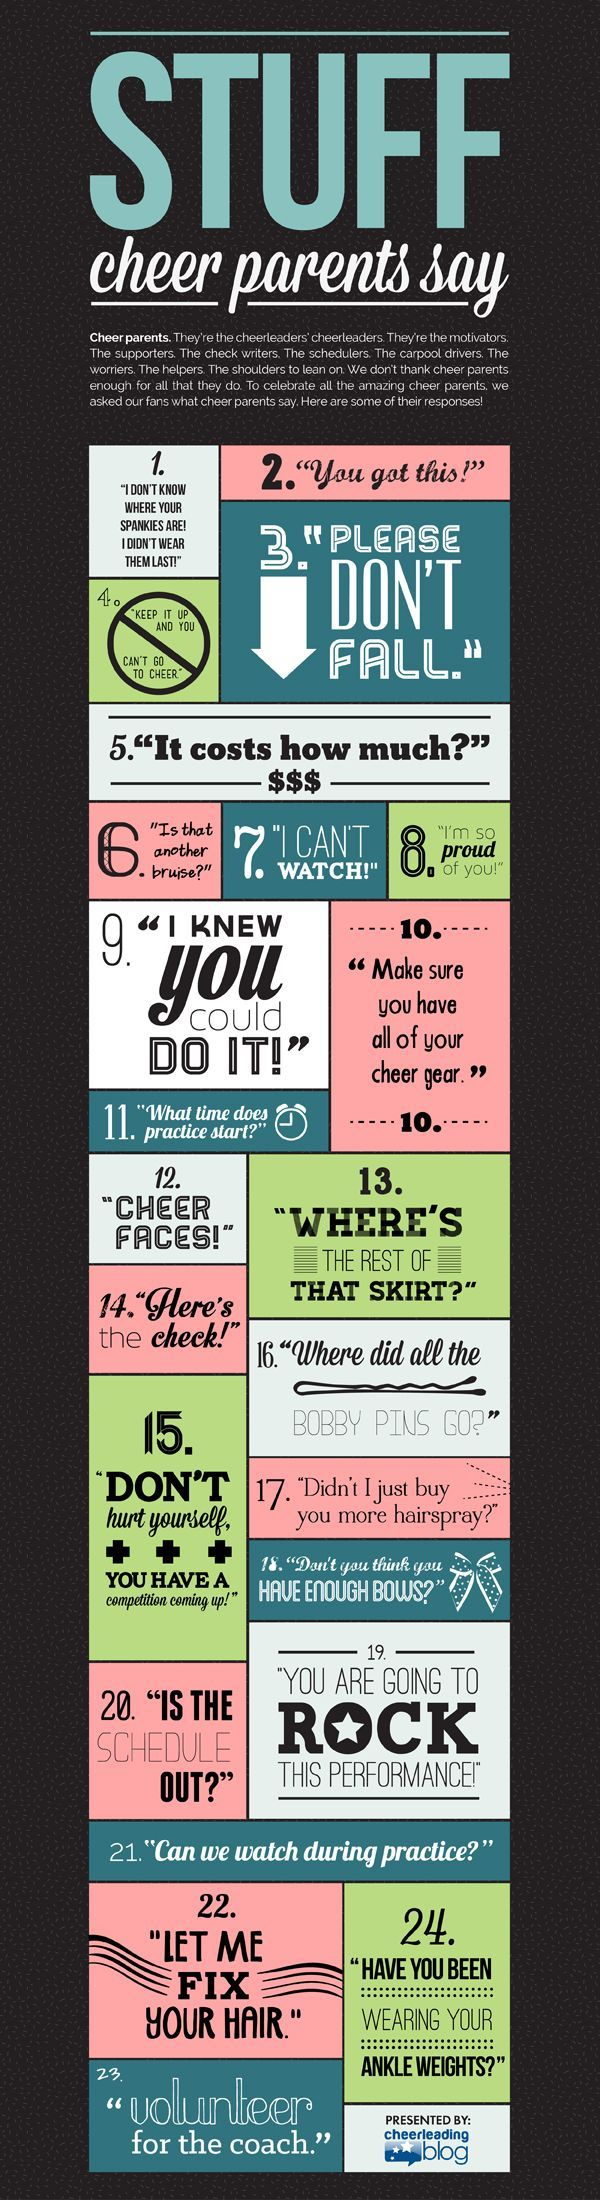 Cheer Parent Quotes | Found on cheerleadingblog.com